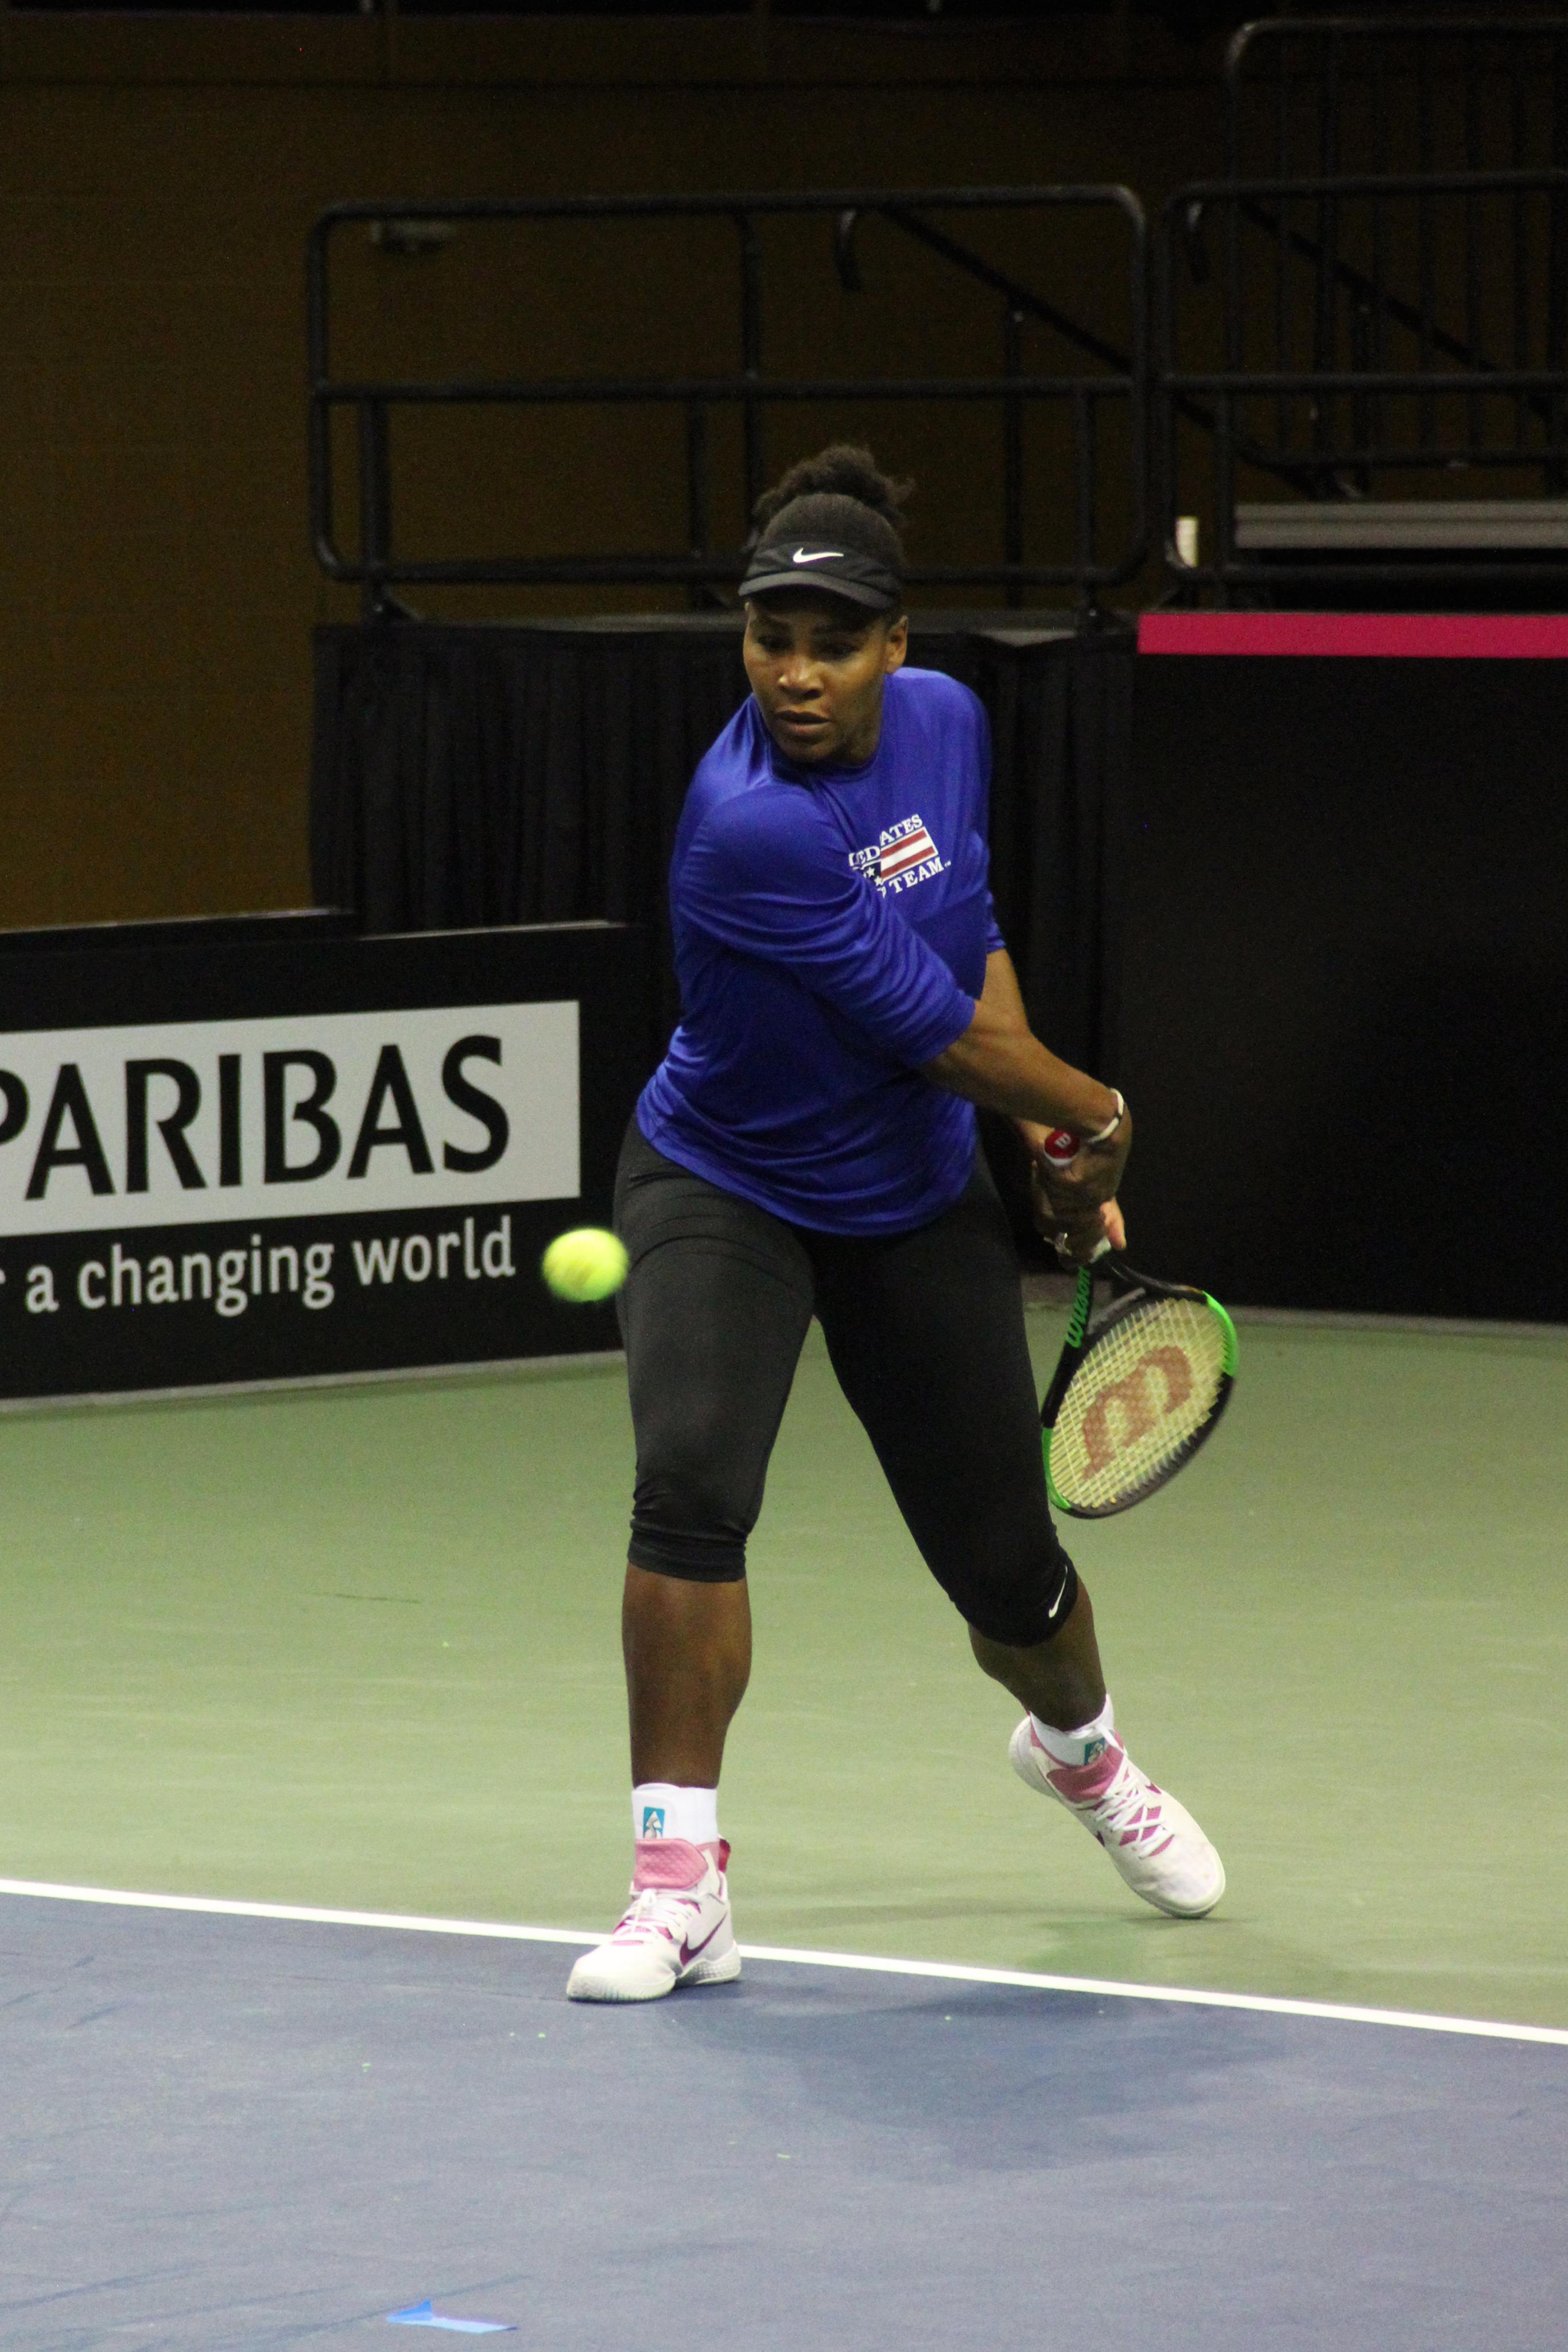 Serena Williams practices at the US Cellular Center on Feb. 7, 2018, ahead of the Fed Cup. (Photo credit: WLOS Staff)